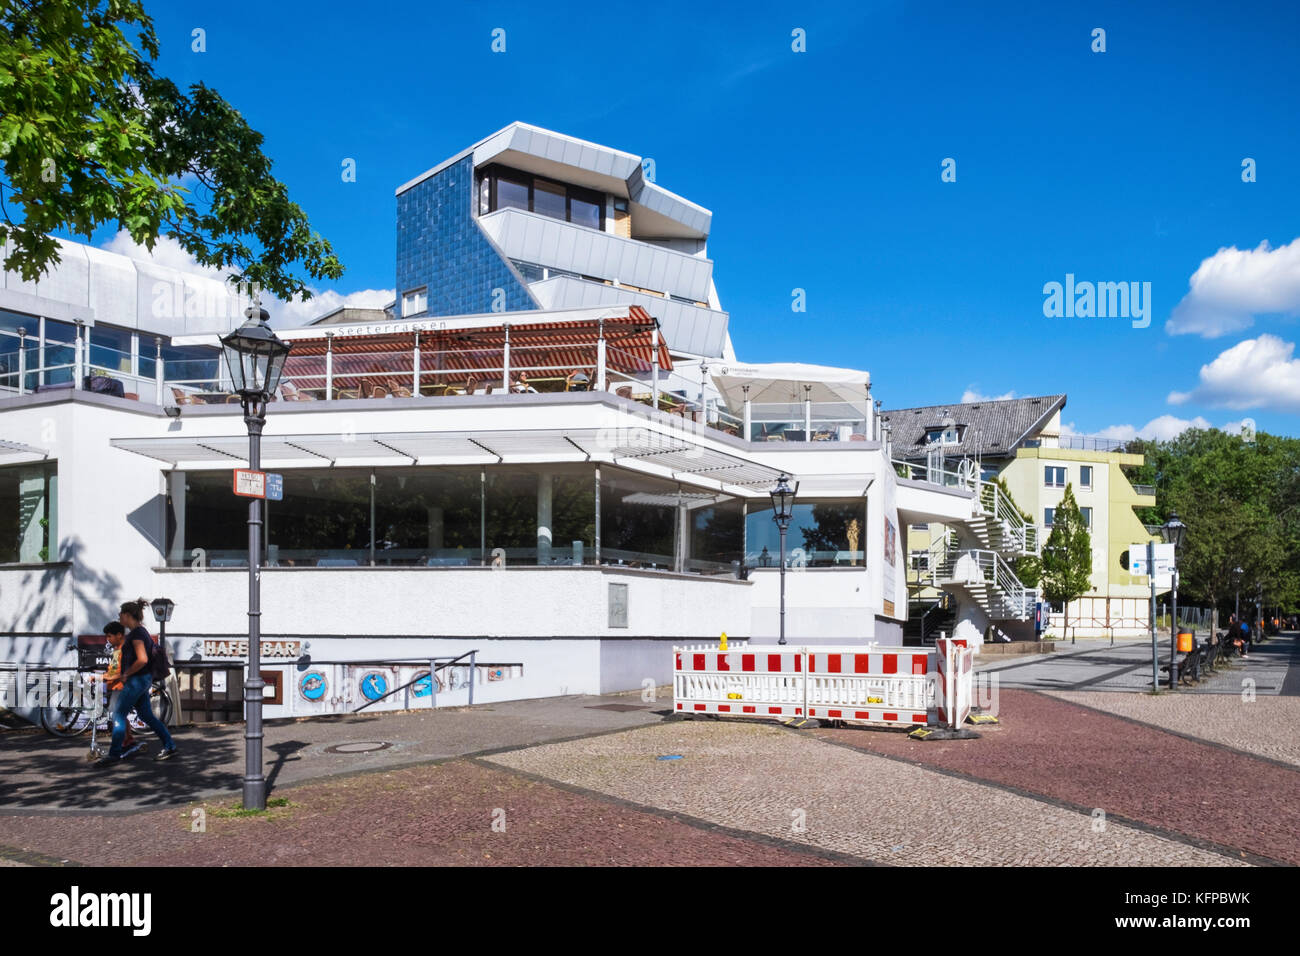 Restaurant Deutsche Küche Berlin Tegel Tegel Lake Stockfotos And Tegel Lake Bilder Alamy